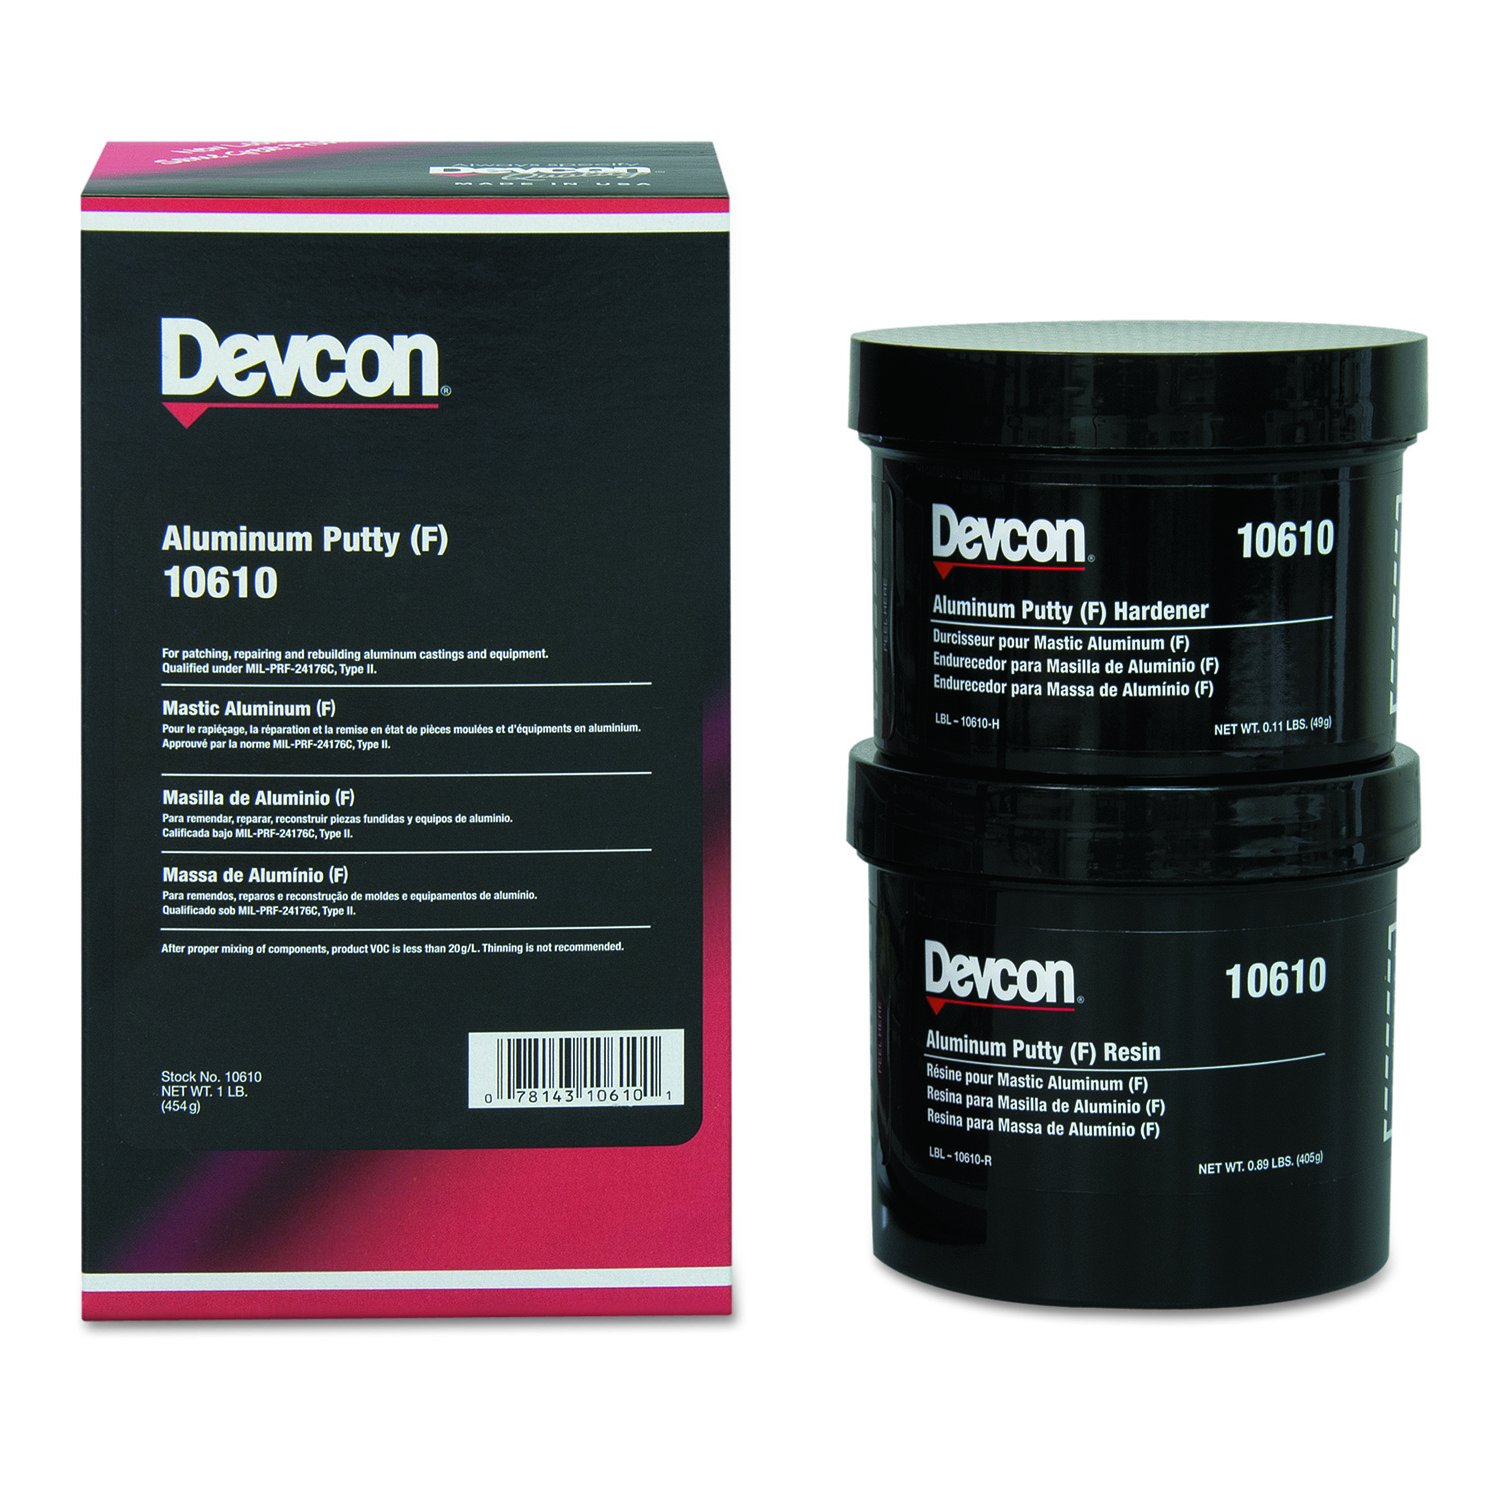 Devcon 10610 Aluminum Putty (F), 1 lb. Can 230-10610